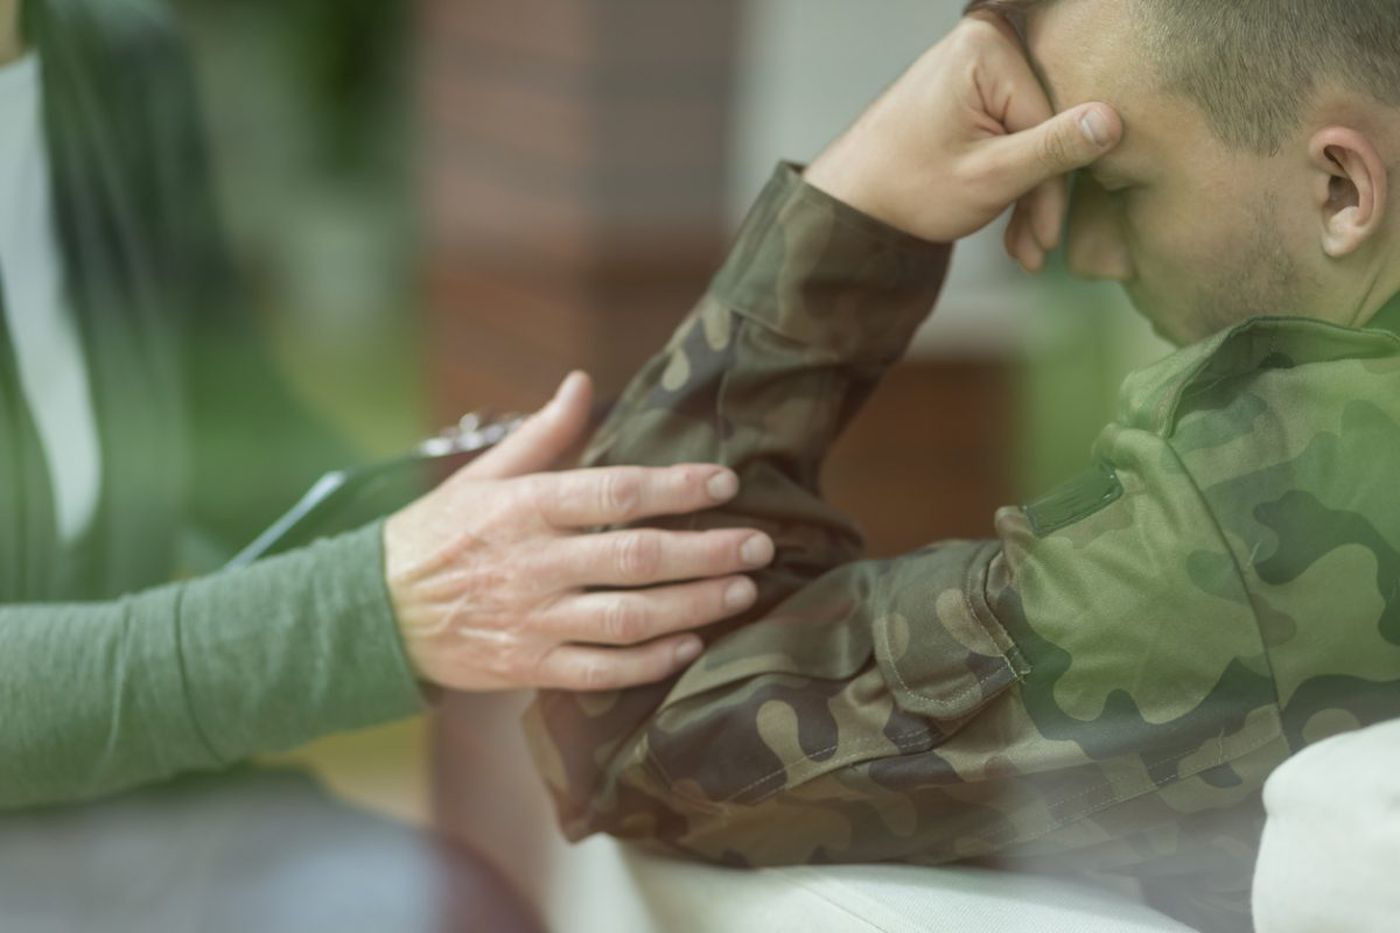 Commentary: The veteran suicide crisis is preventable. Here's what you can do.